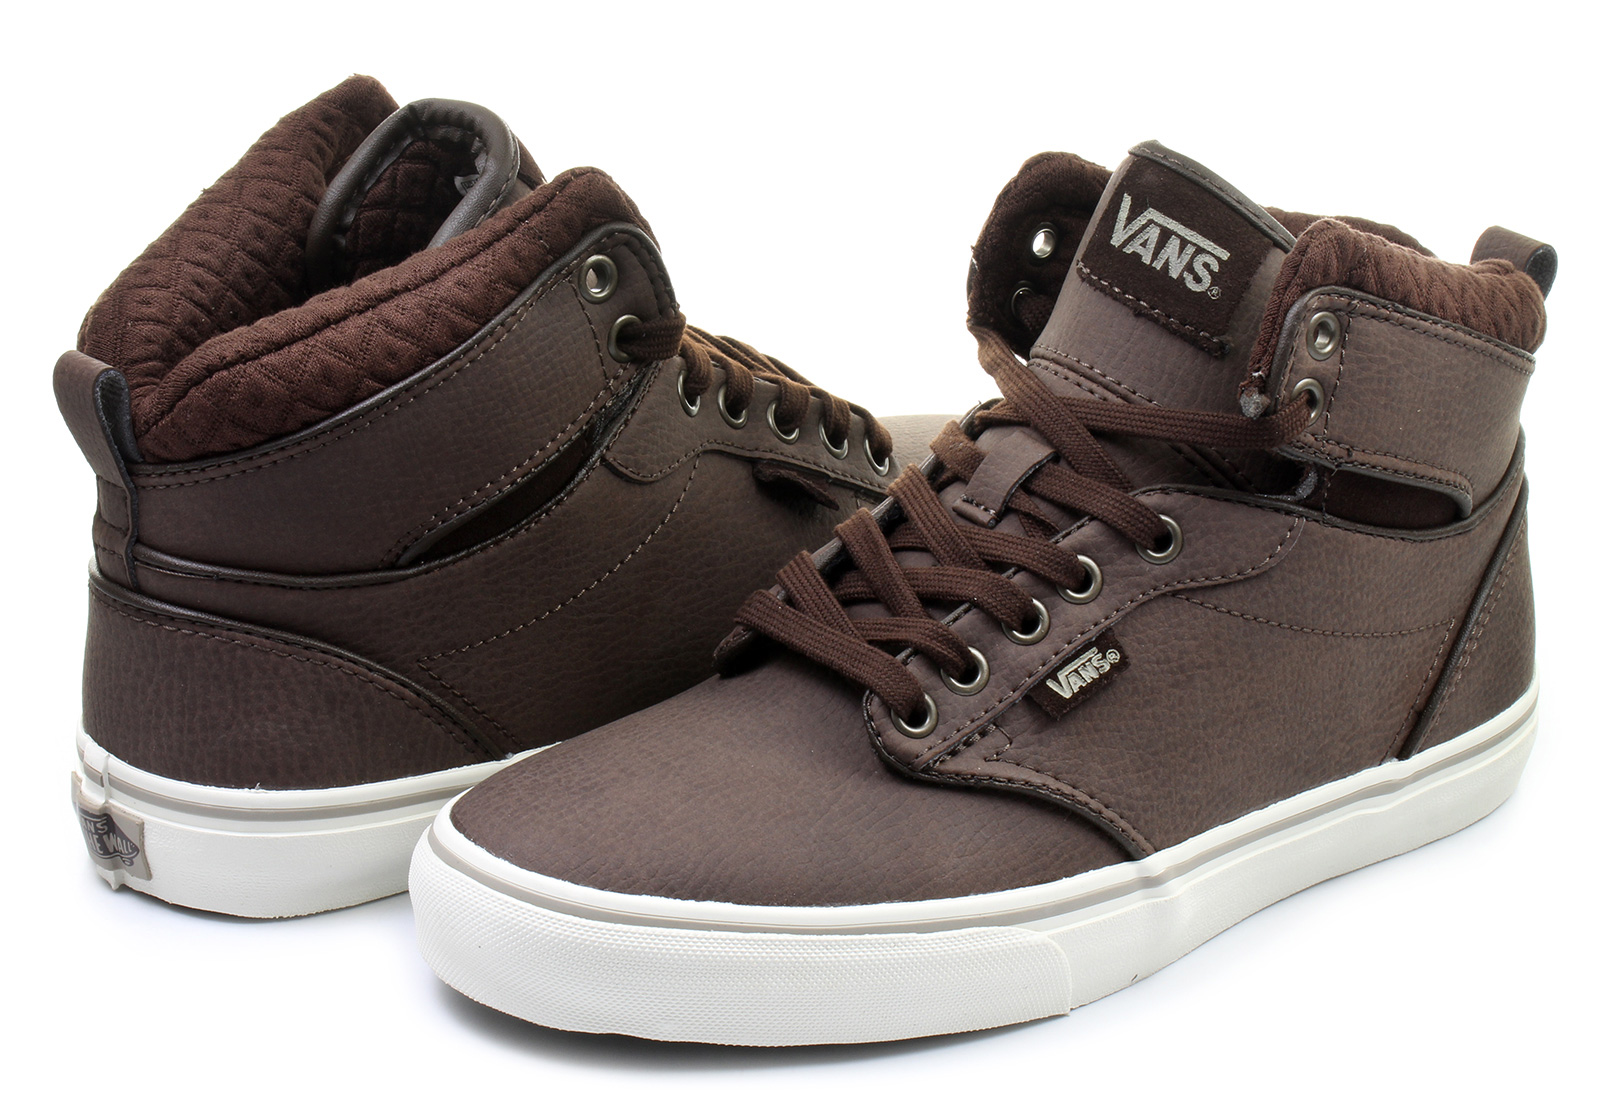 vans sneakers atwood hi vvg3gj2 online shop for sneakers shoes and boots. Black Bedroom Furniture Sets. Home Design Ideas